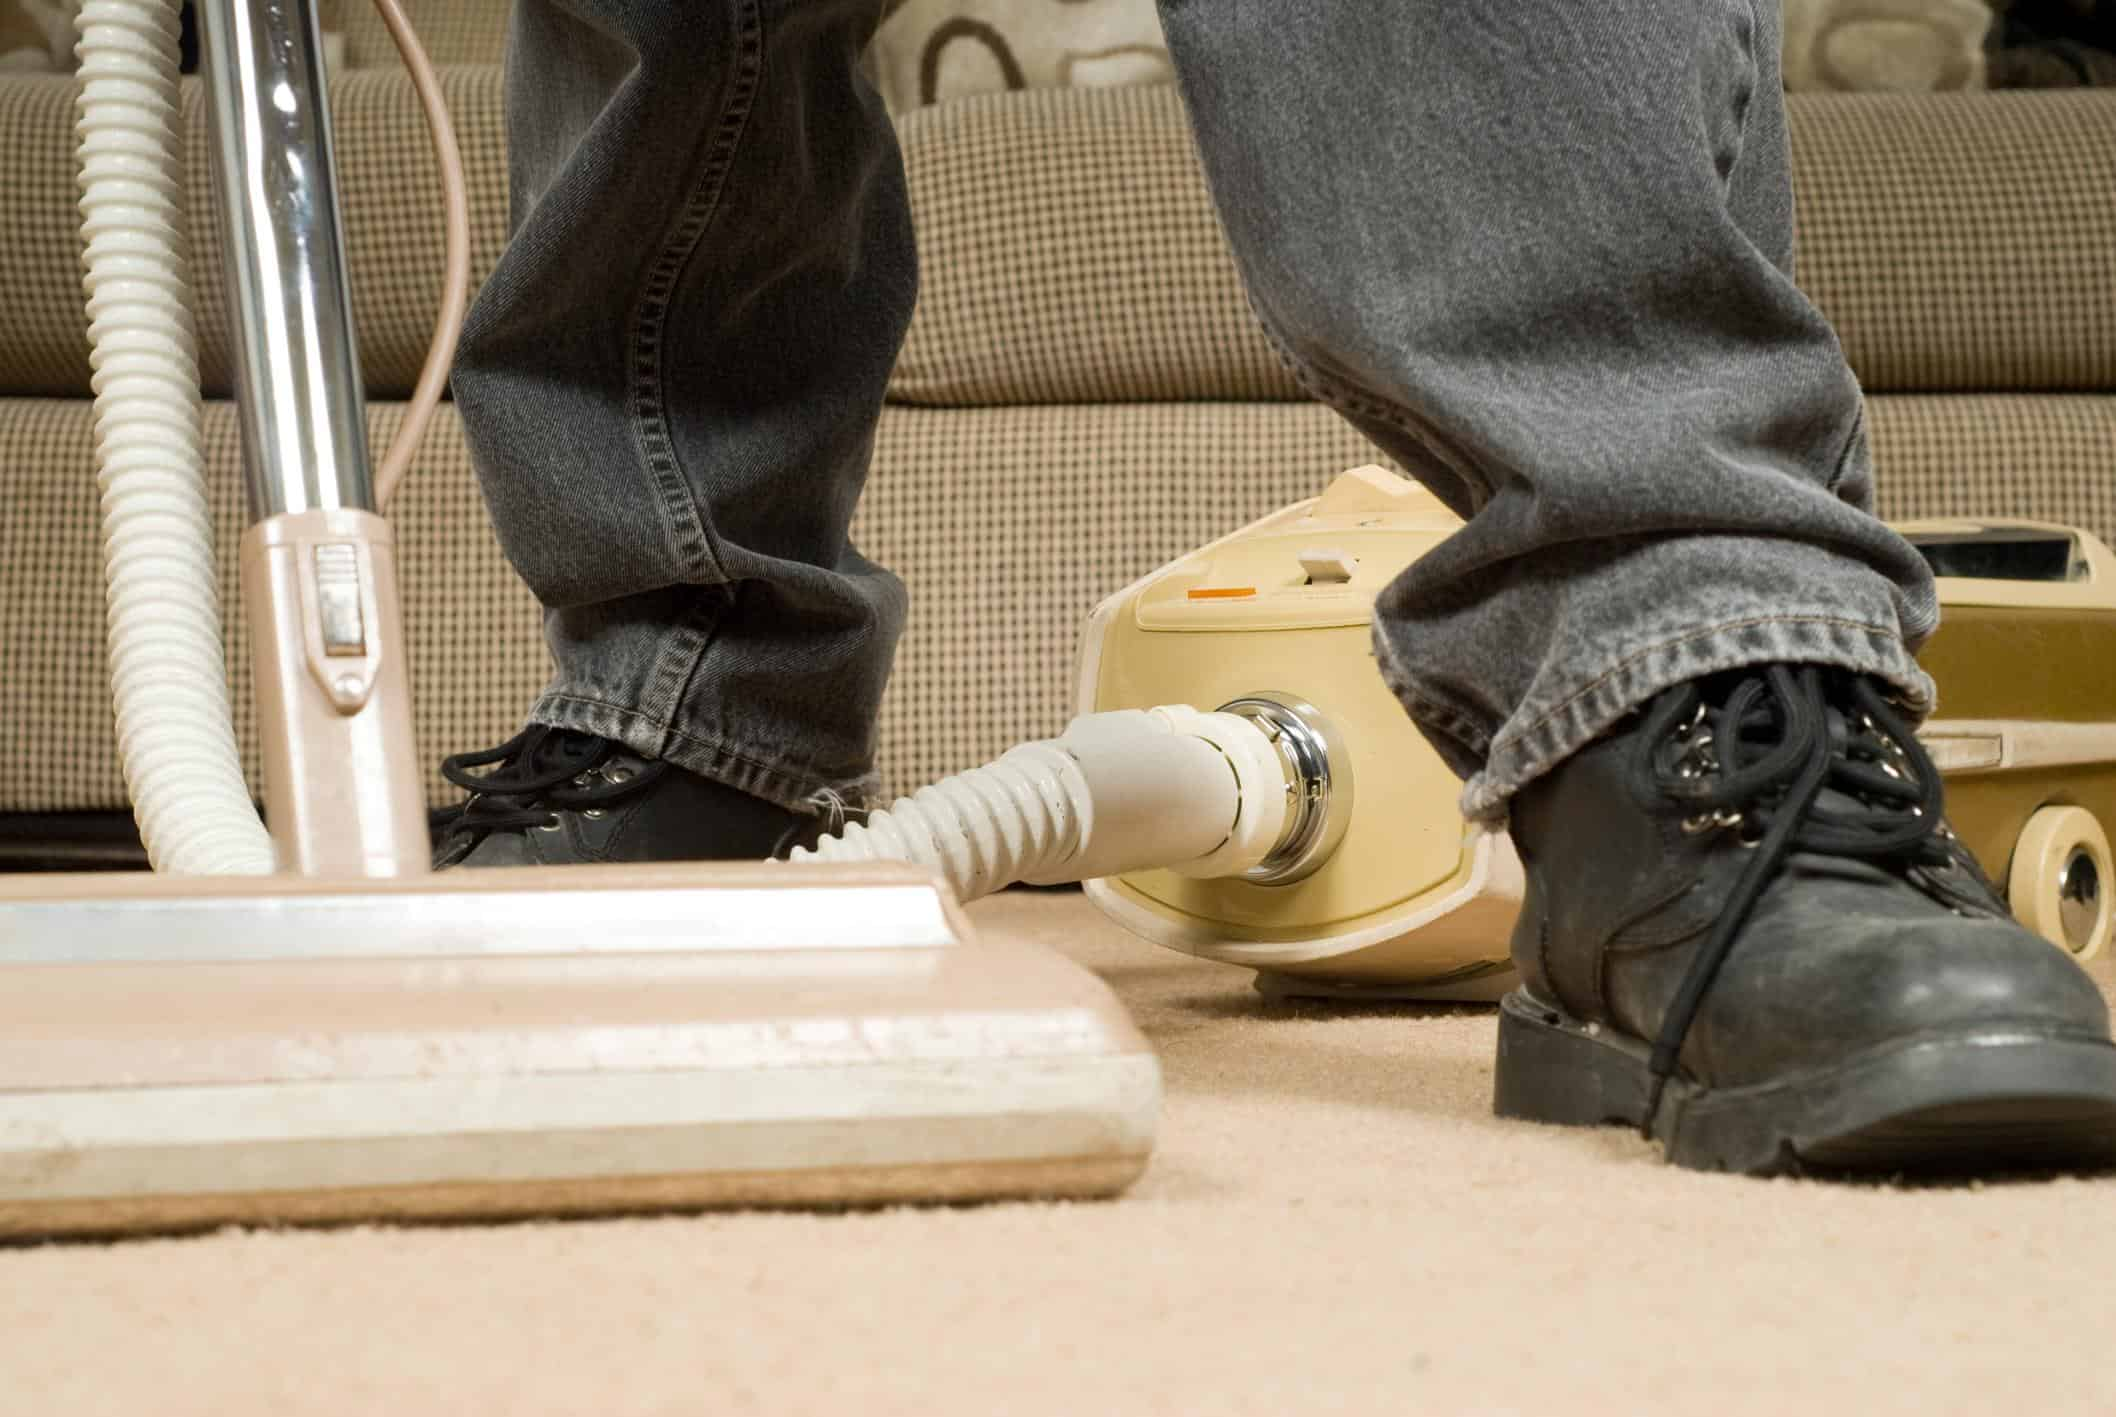 This is a picture of a residential carpet cleaning.